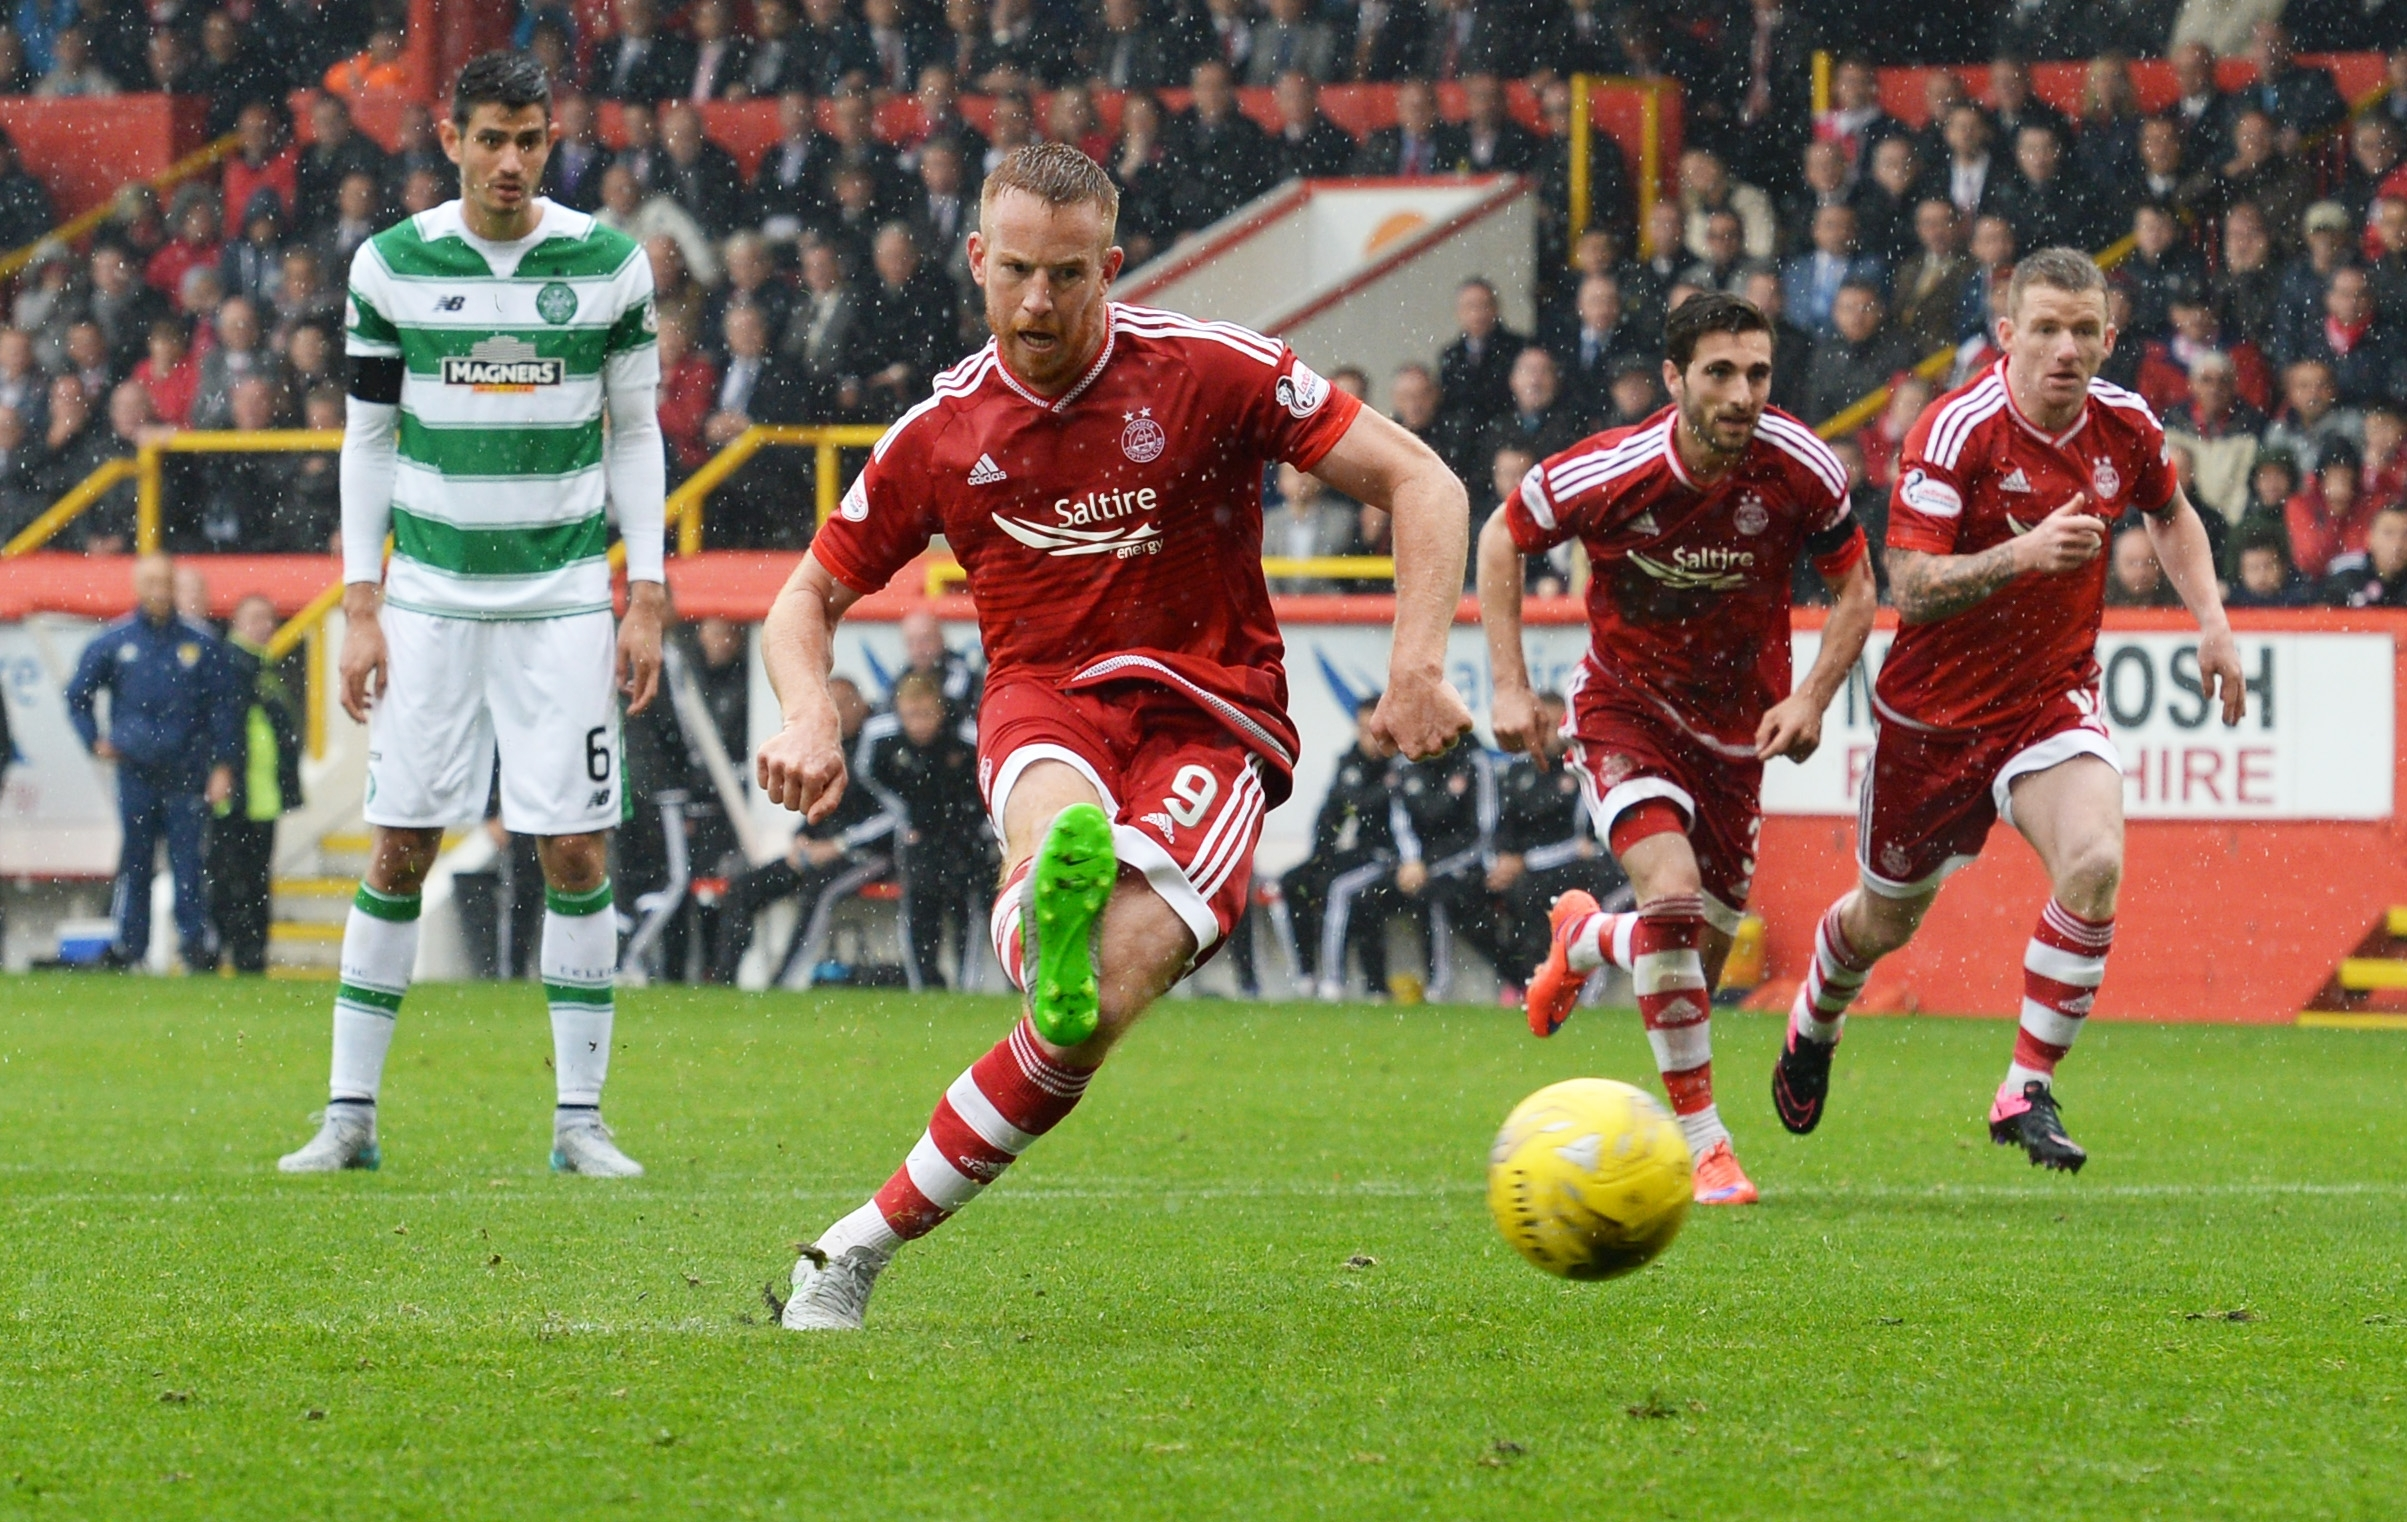 Adam Rooney slots the ball home from the penalty spot to equalise against Celtic